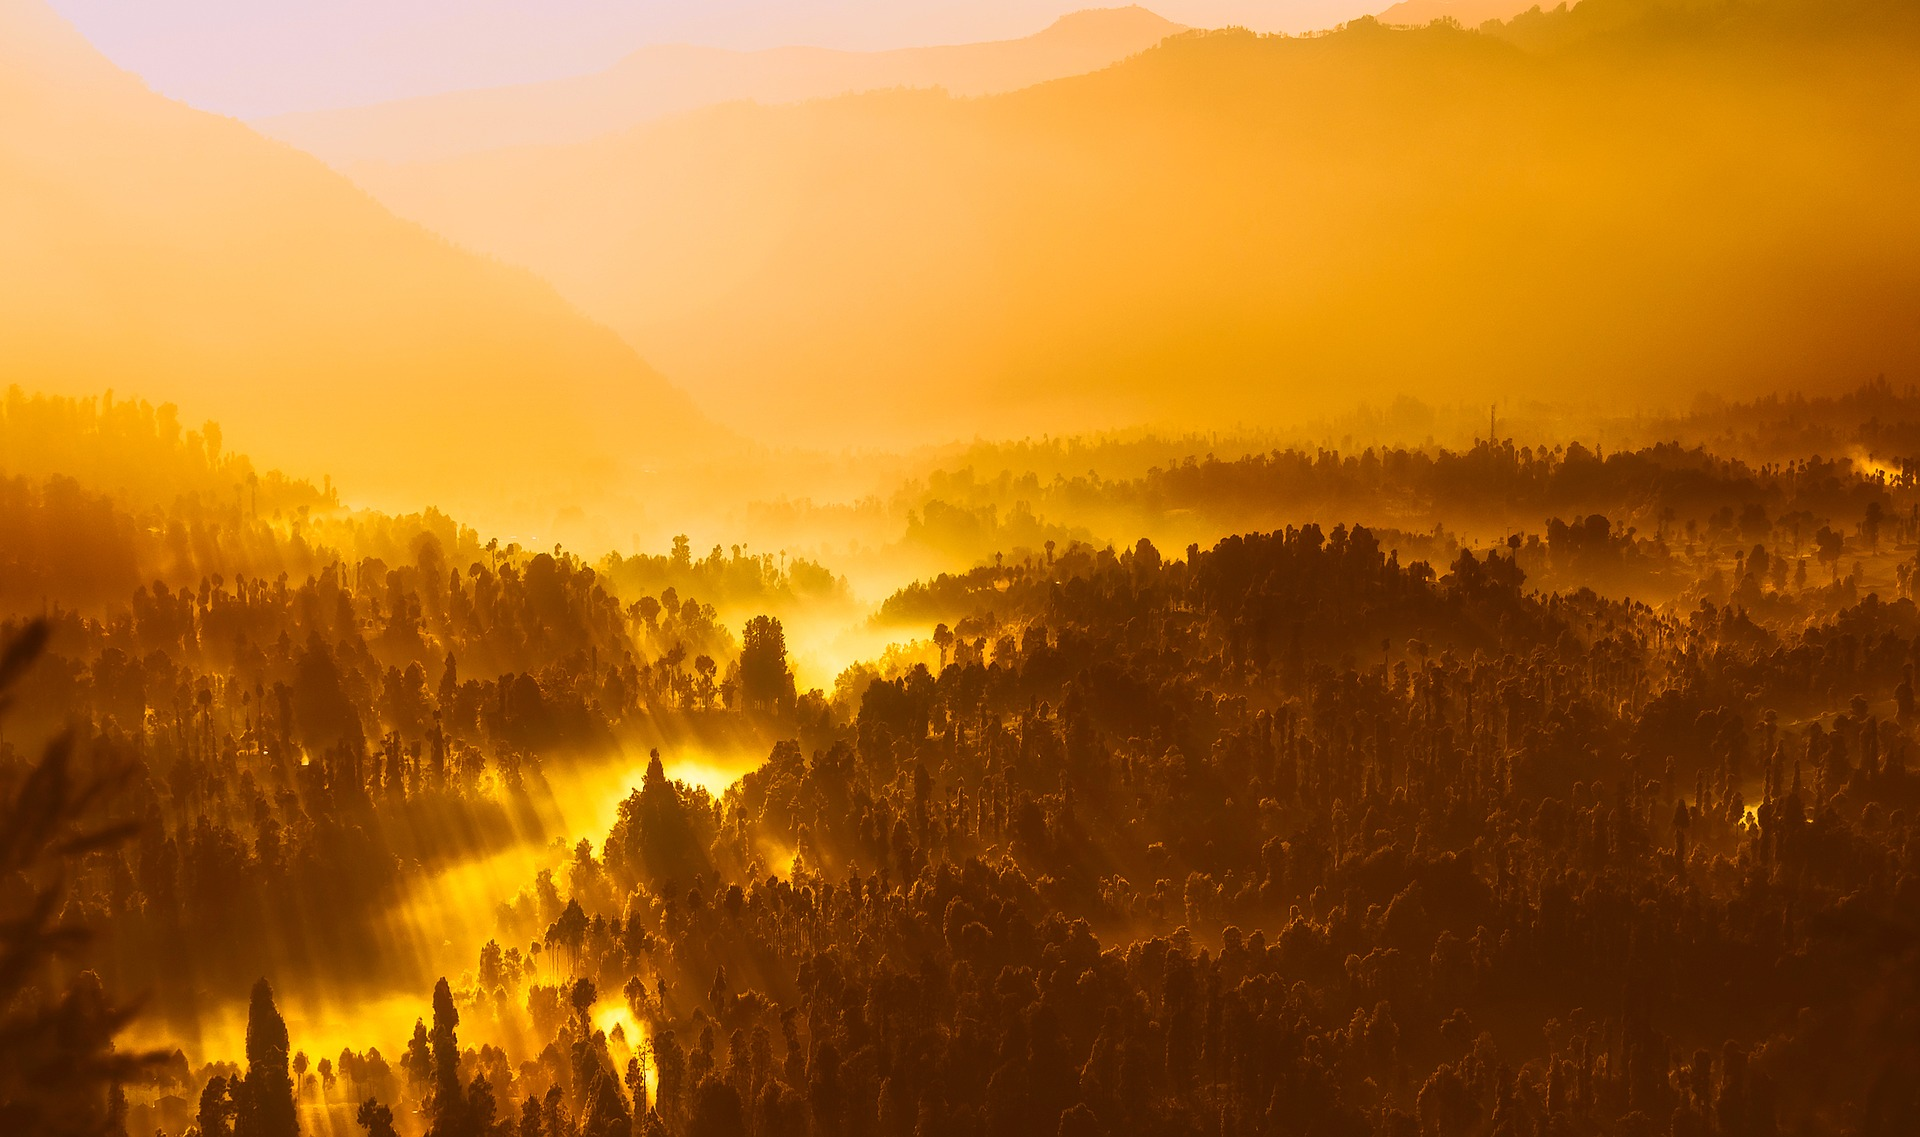 Sunrise and fog over the rainforests of Indonesia